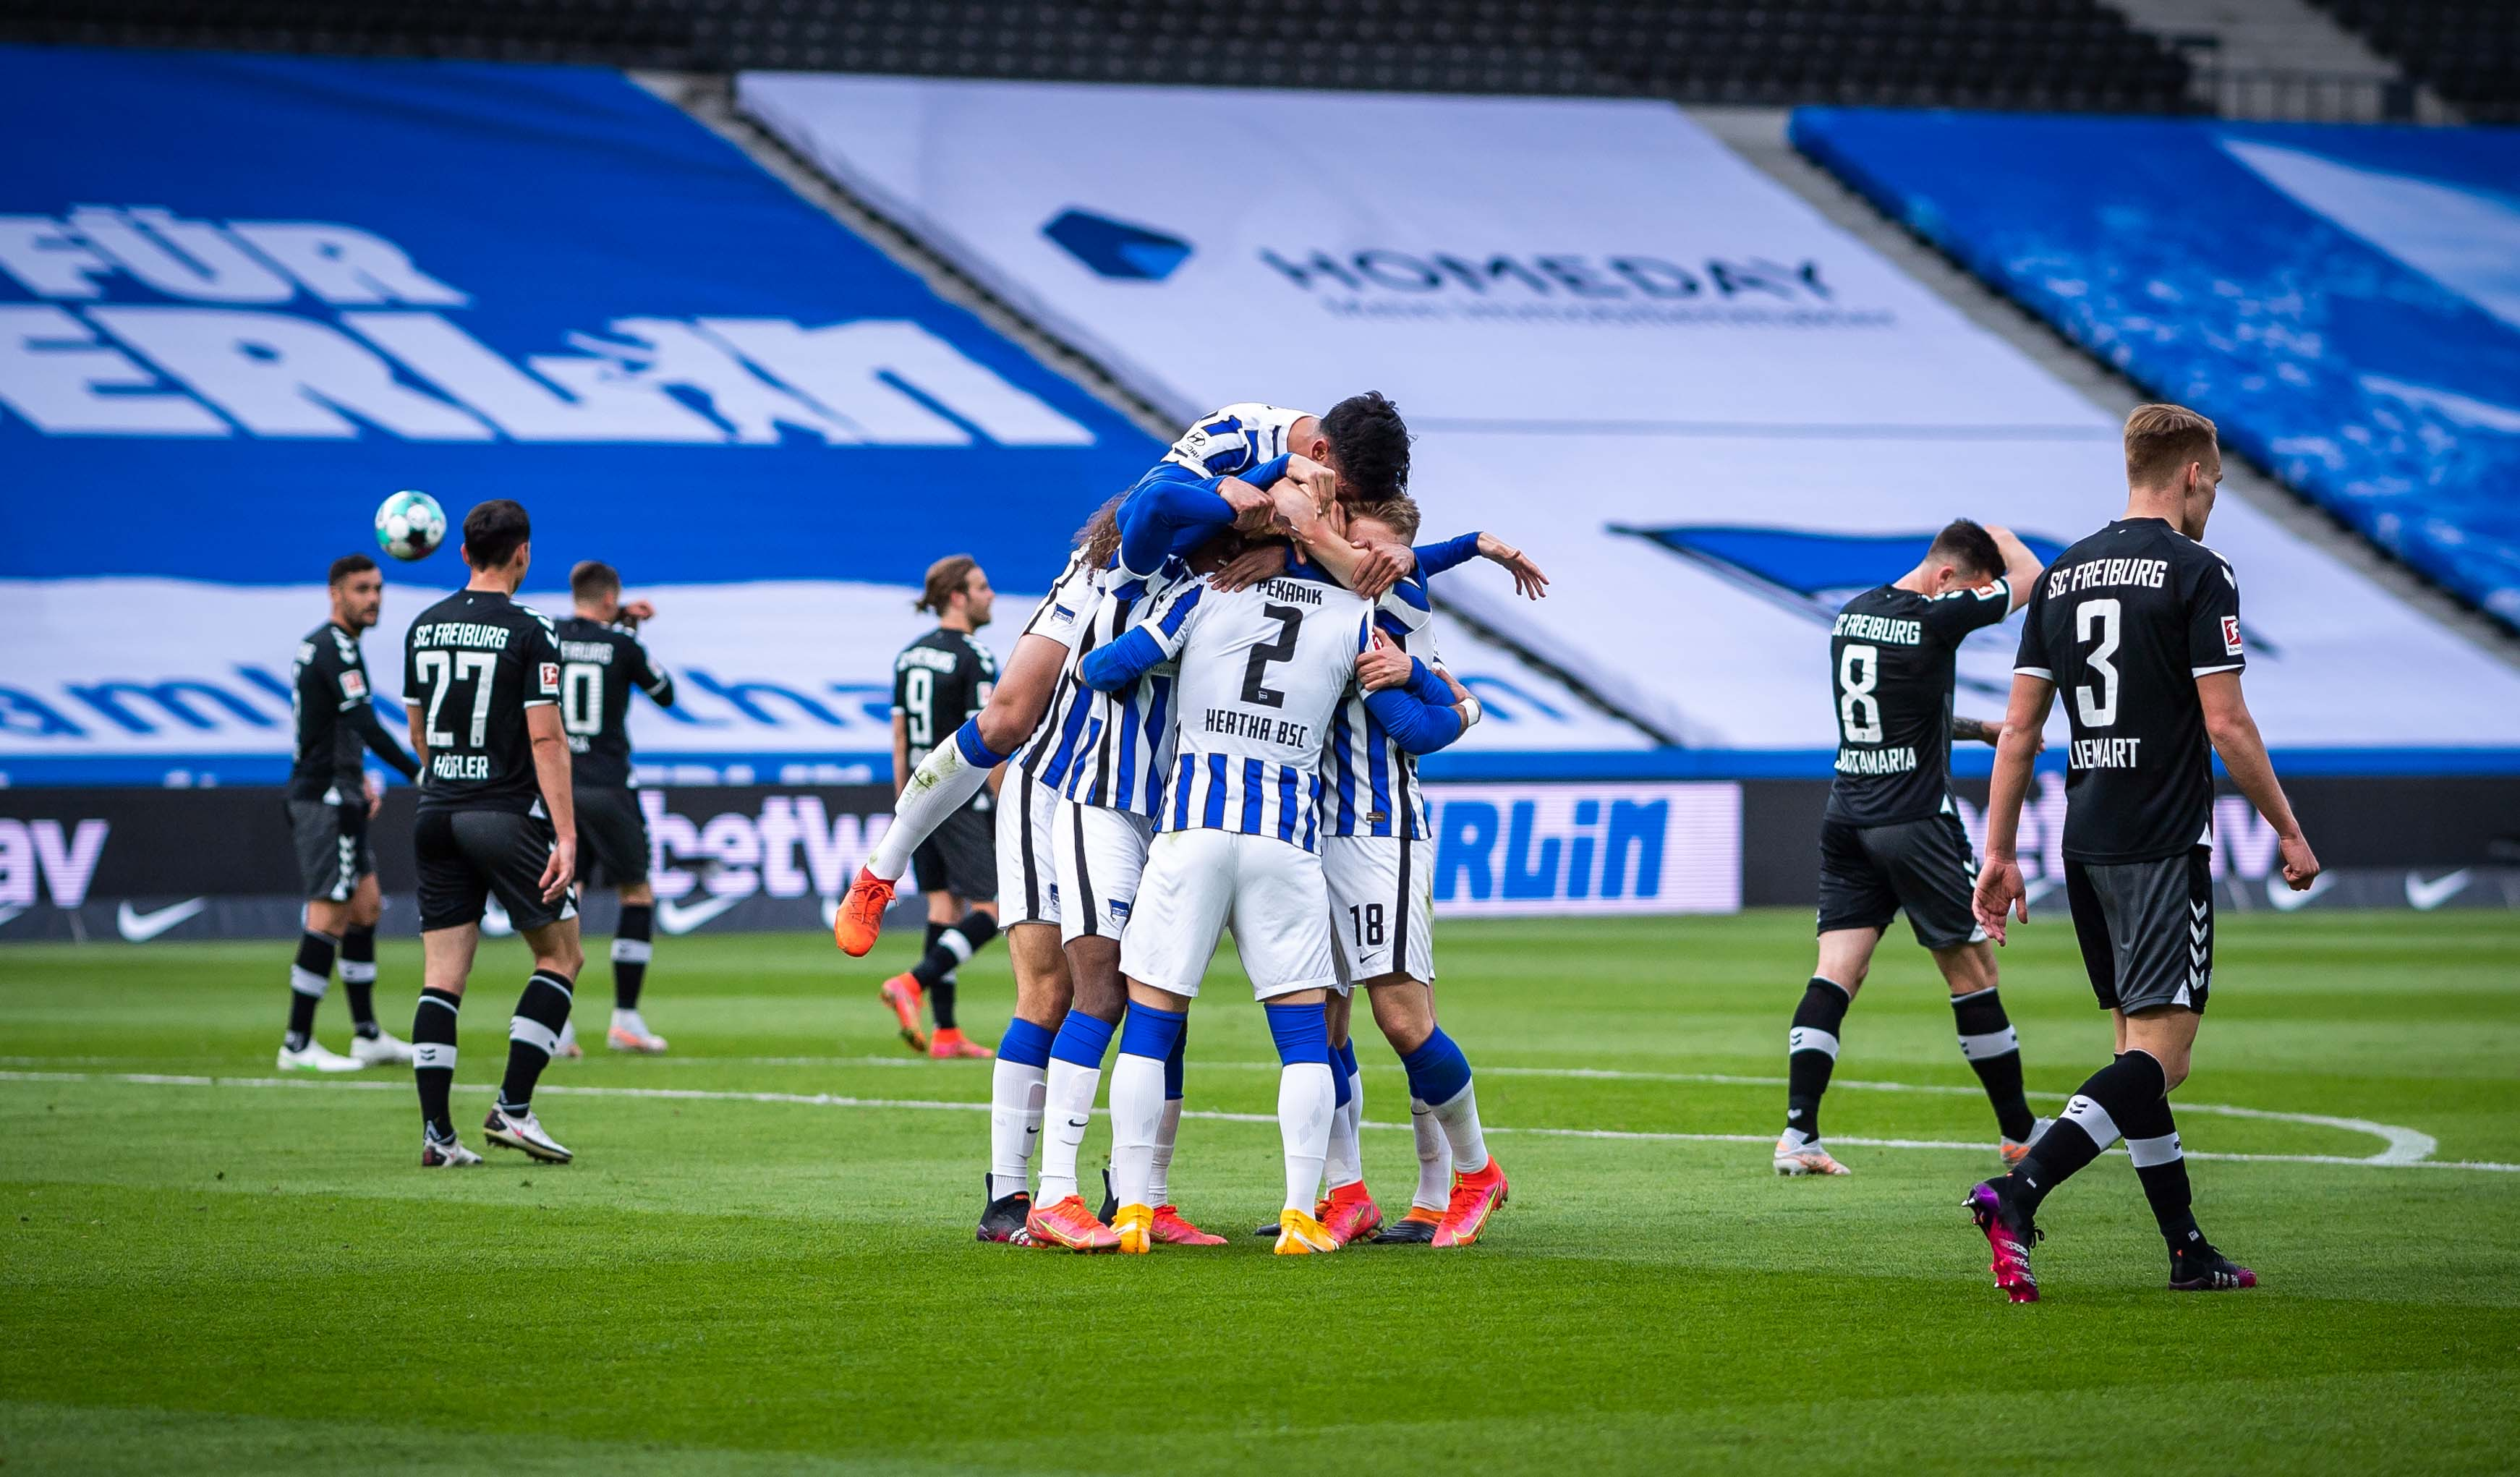 The players celebrate Hertha's second goal.